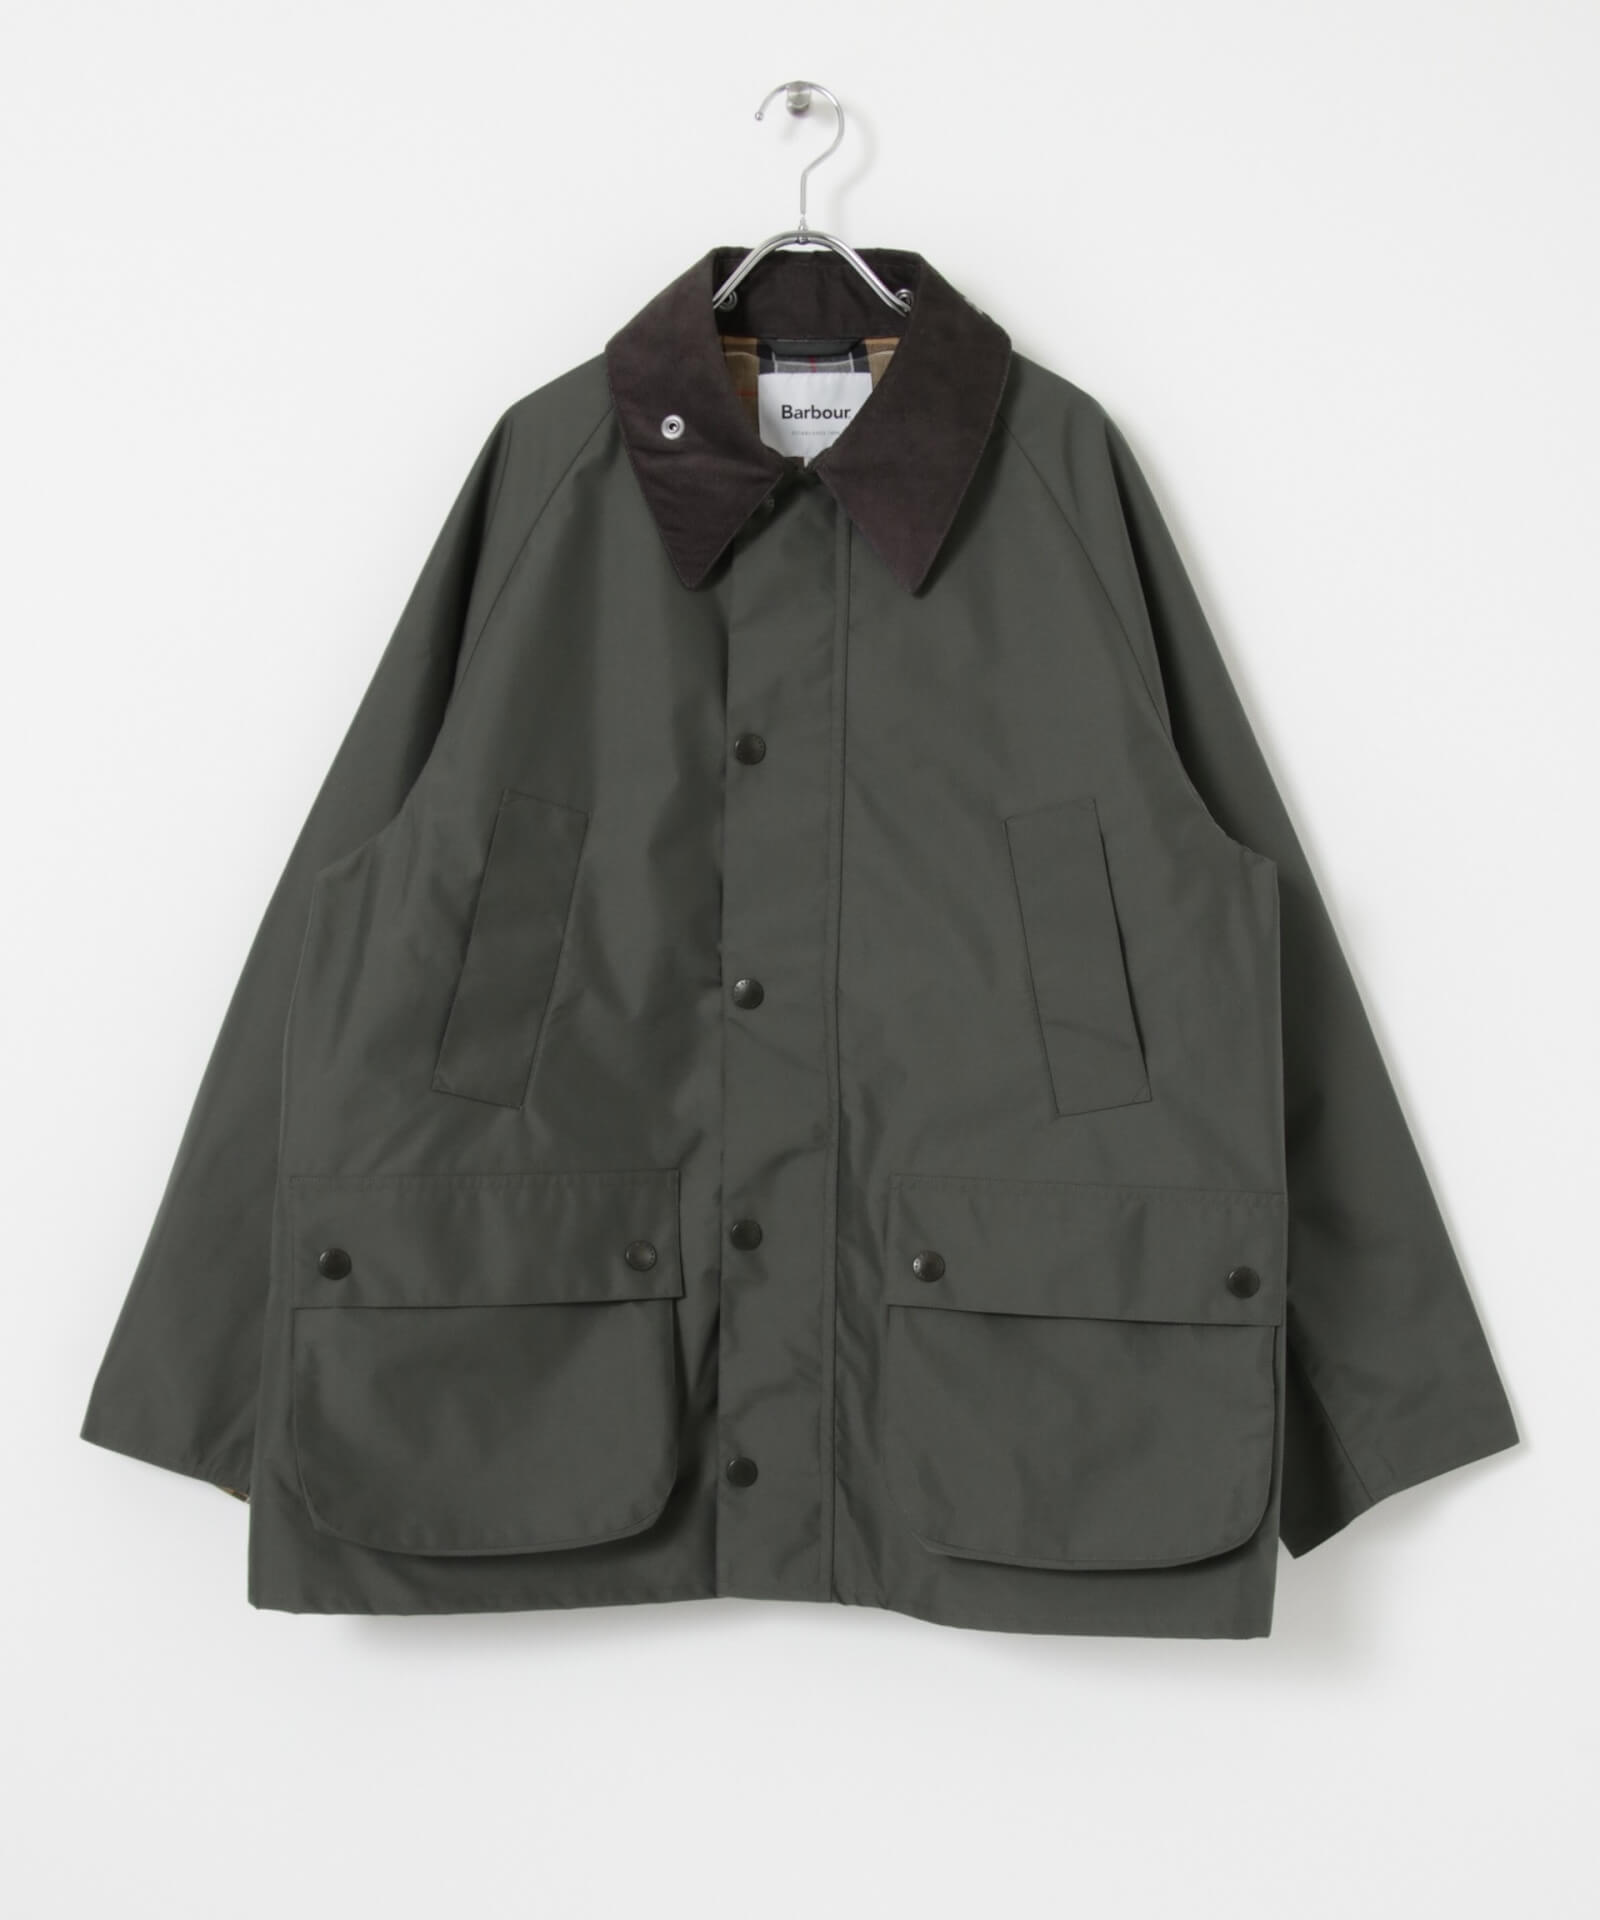 BarbourとworkahoLCのコラボアイテムが発売決定!OVER SIZE BEDALEモデルのジャケットが登場 life210913_urbs_barbour_5